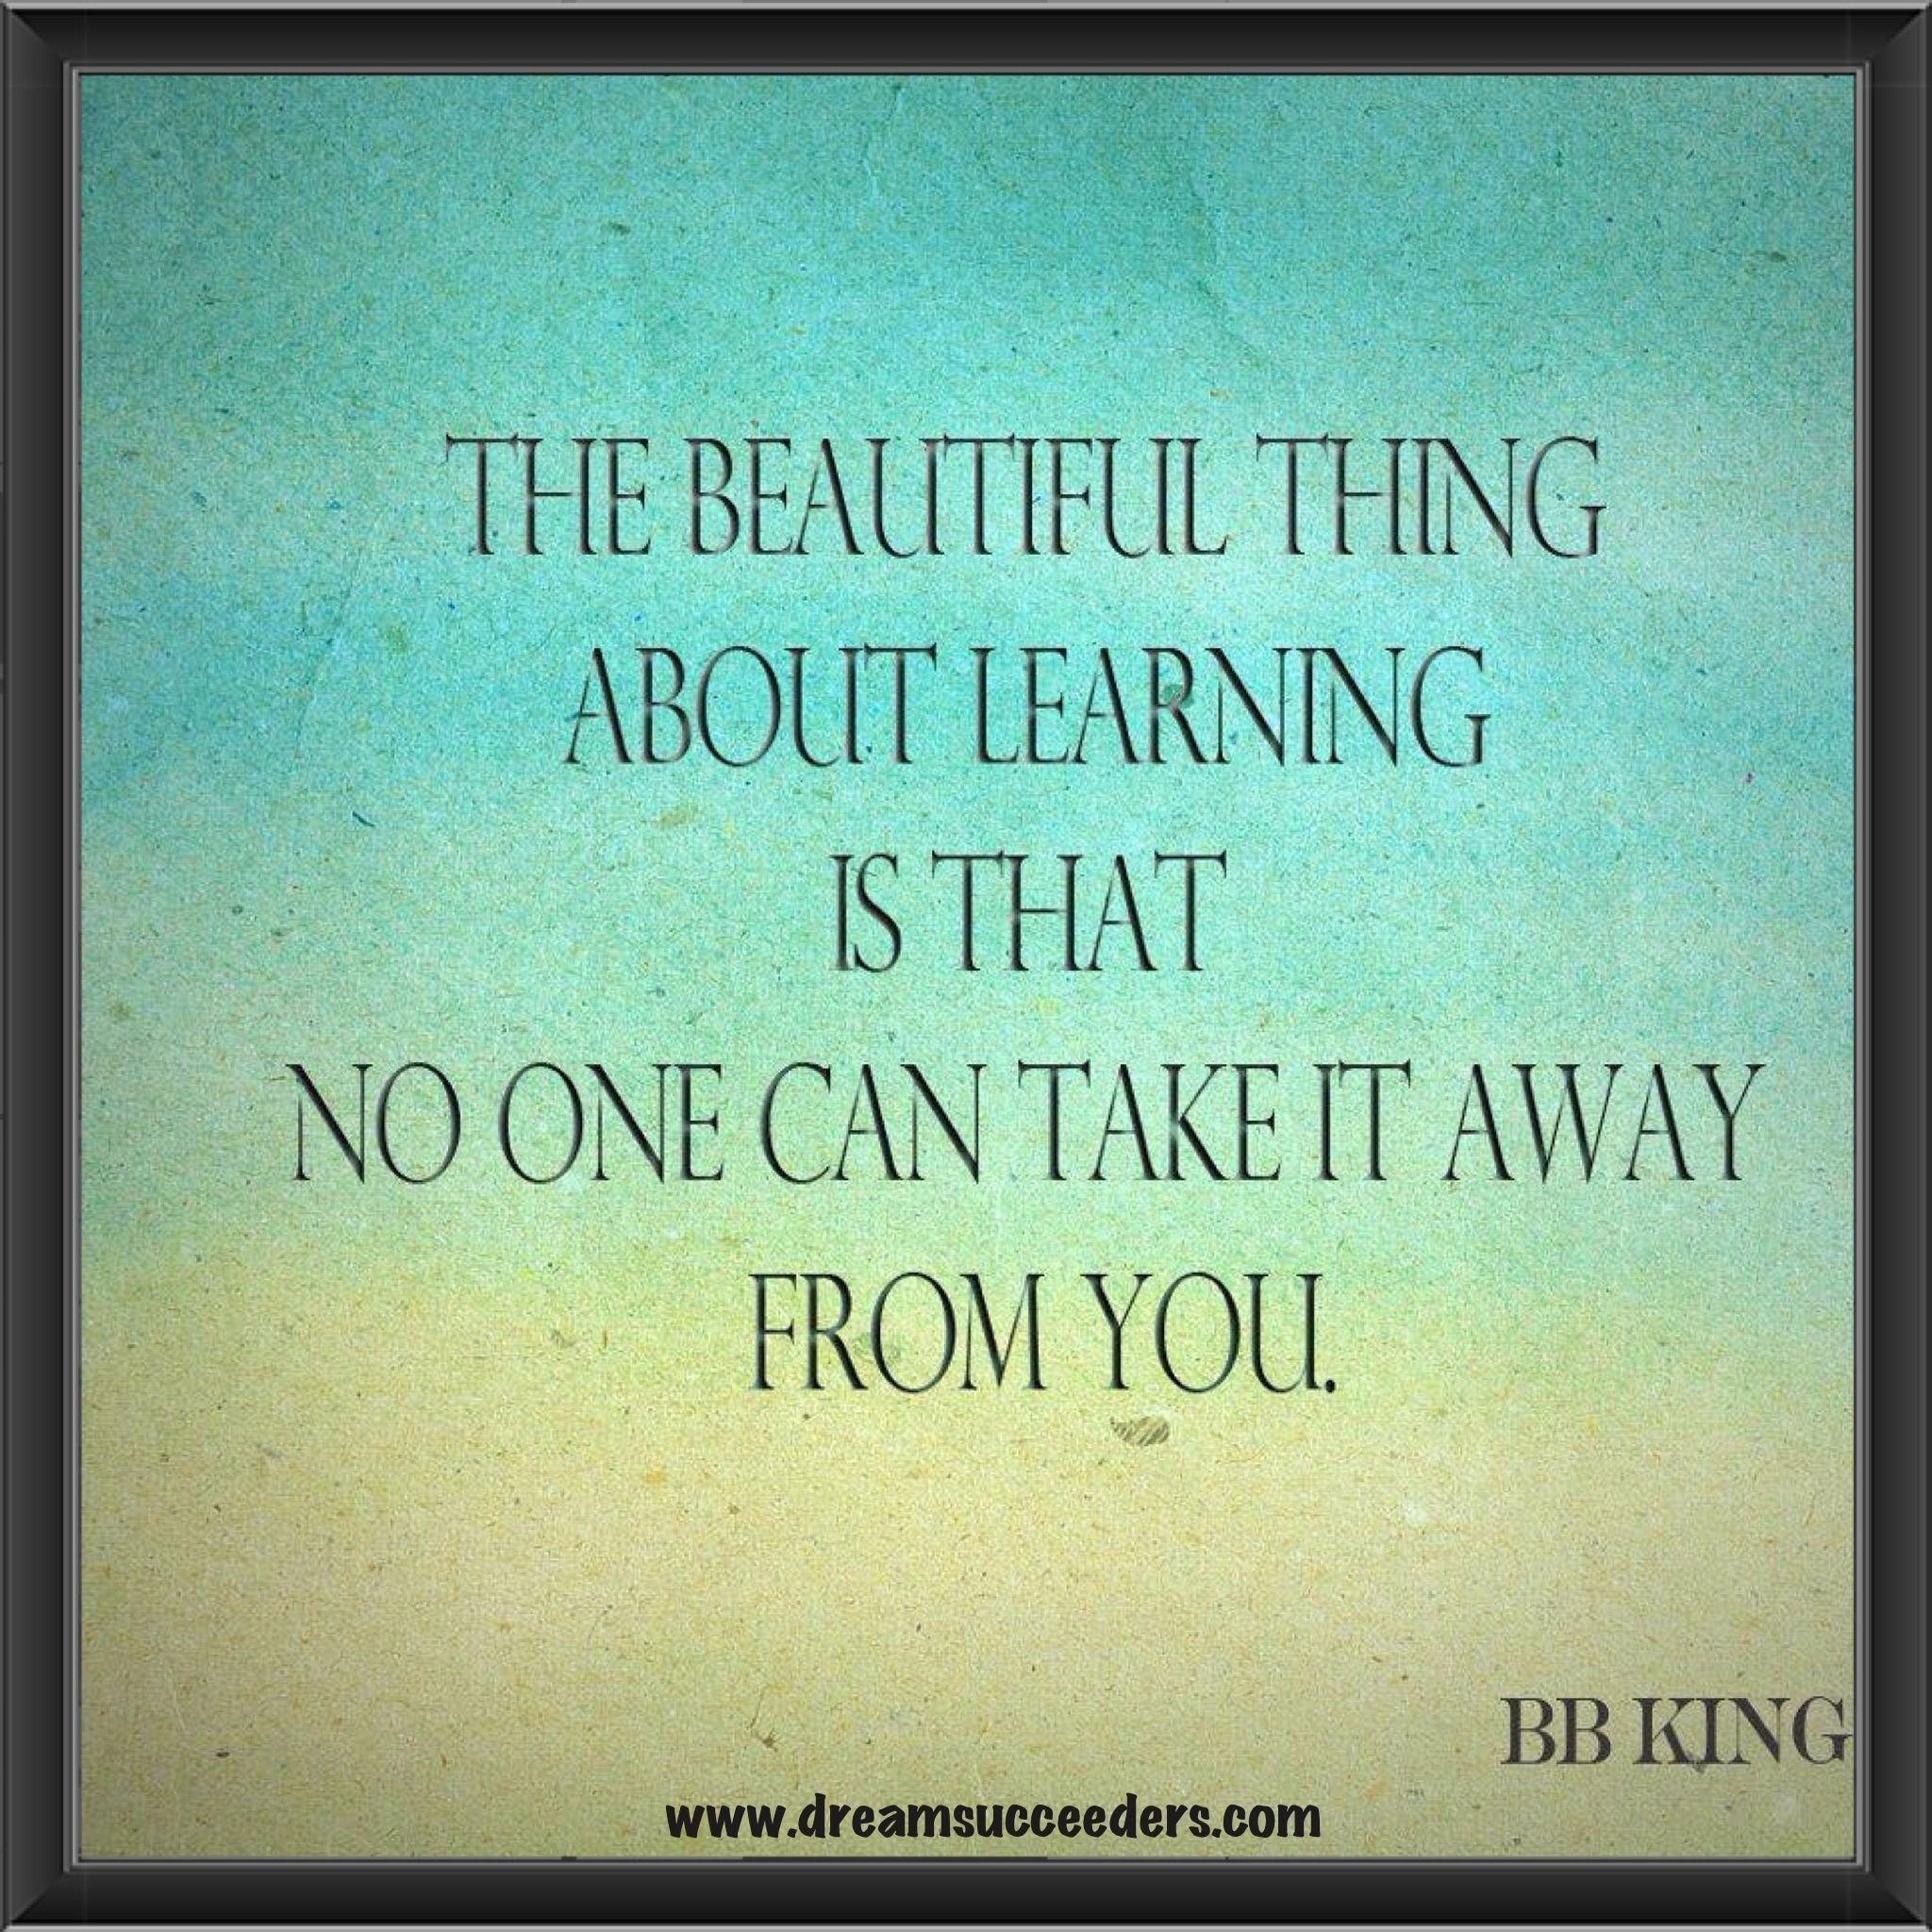 Education And Life Quotes Quotes Lifequotes Learning Blog Mobiledreamers Entrepreneur